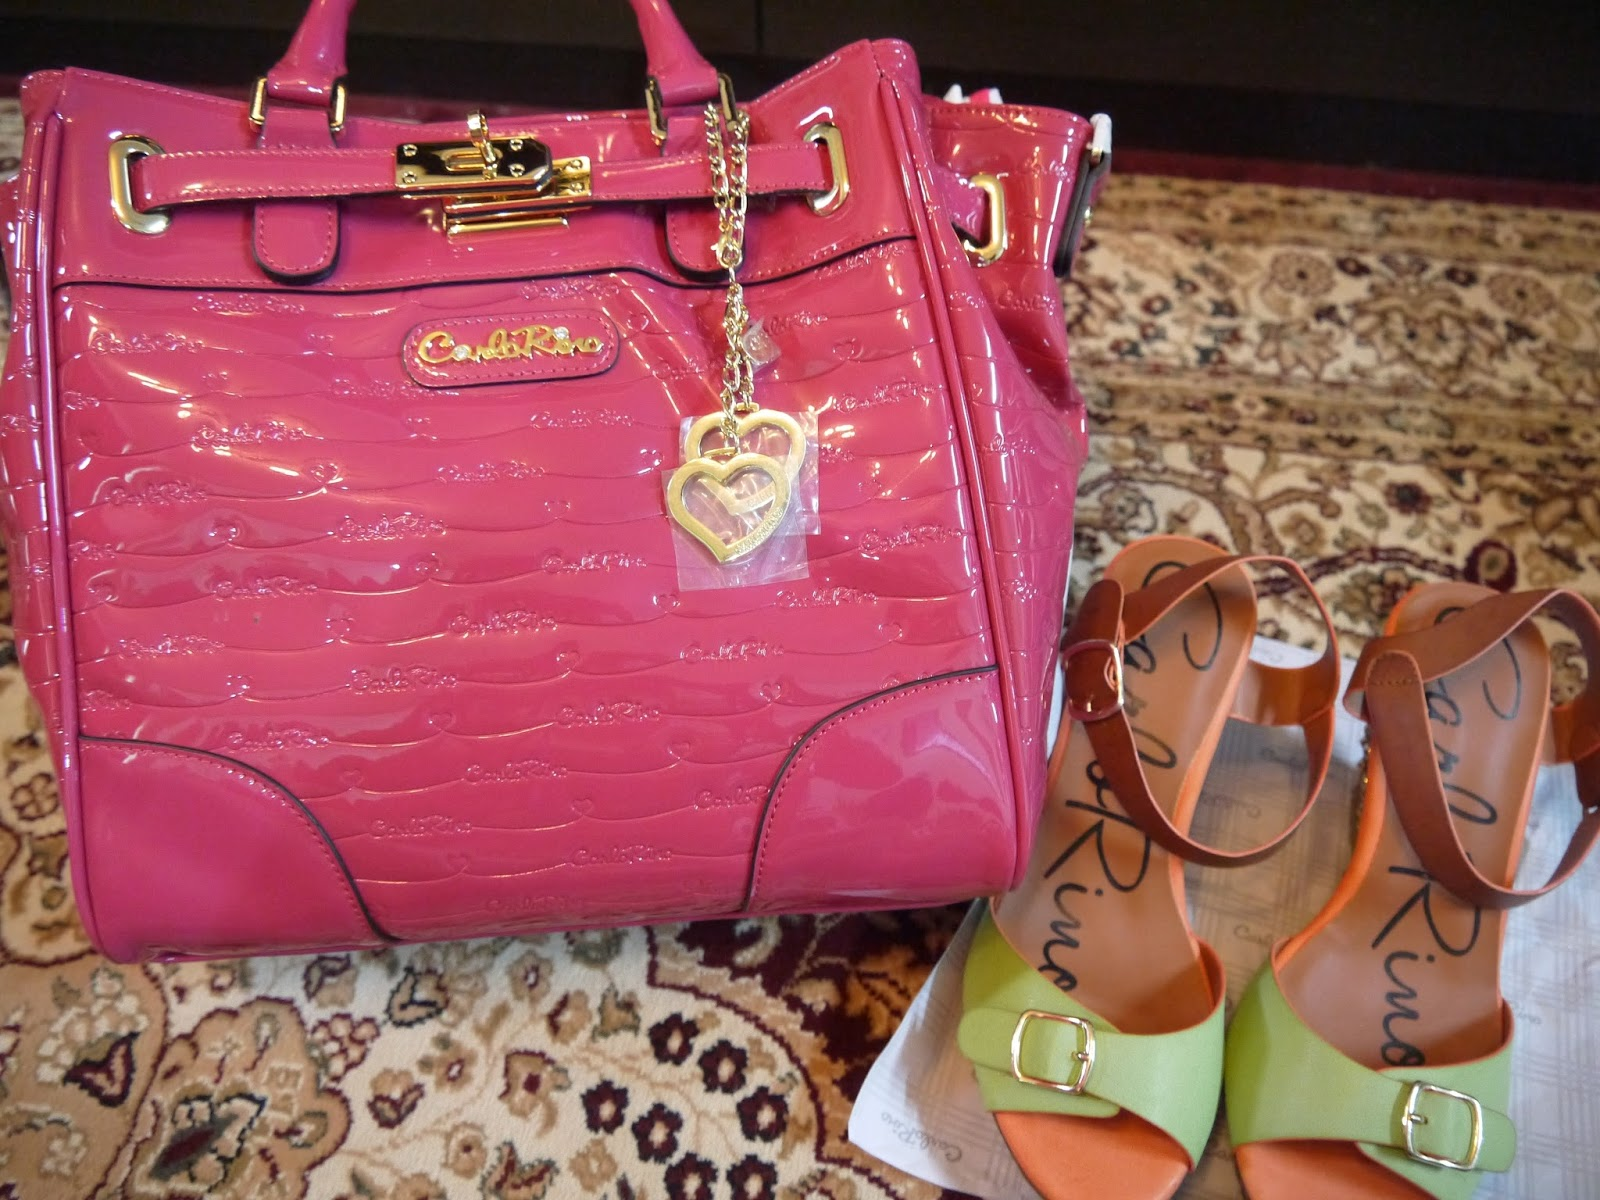 Carlo Rino 30th Anniversary Celebration Let S Start Celebrating This Meaningful Event With Them Today As I Had Purchased Lovely Shiny Pink Handbag